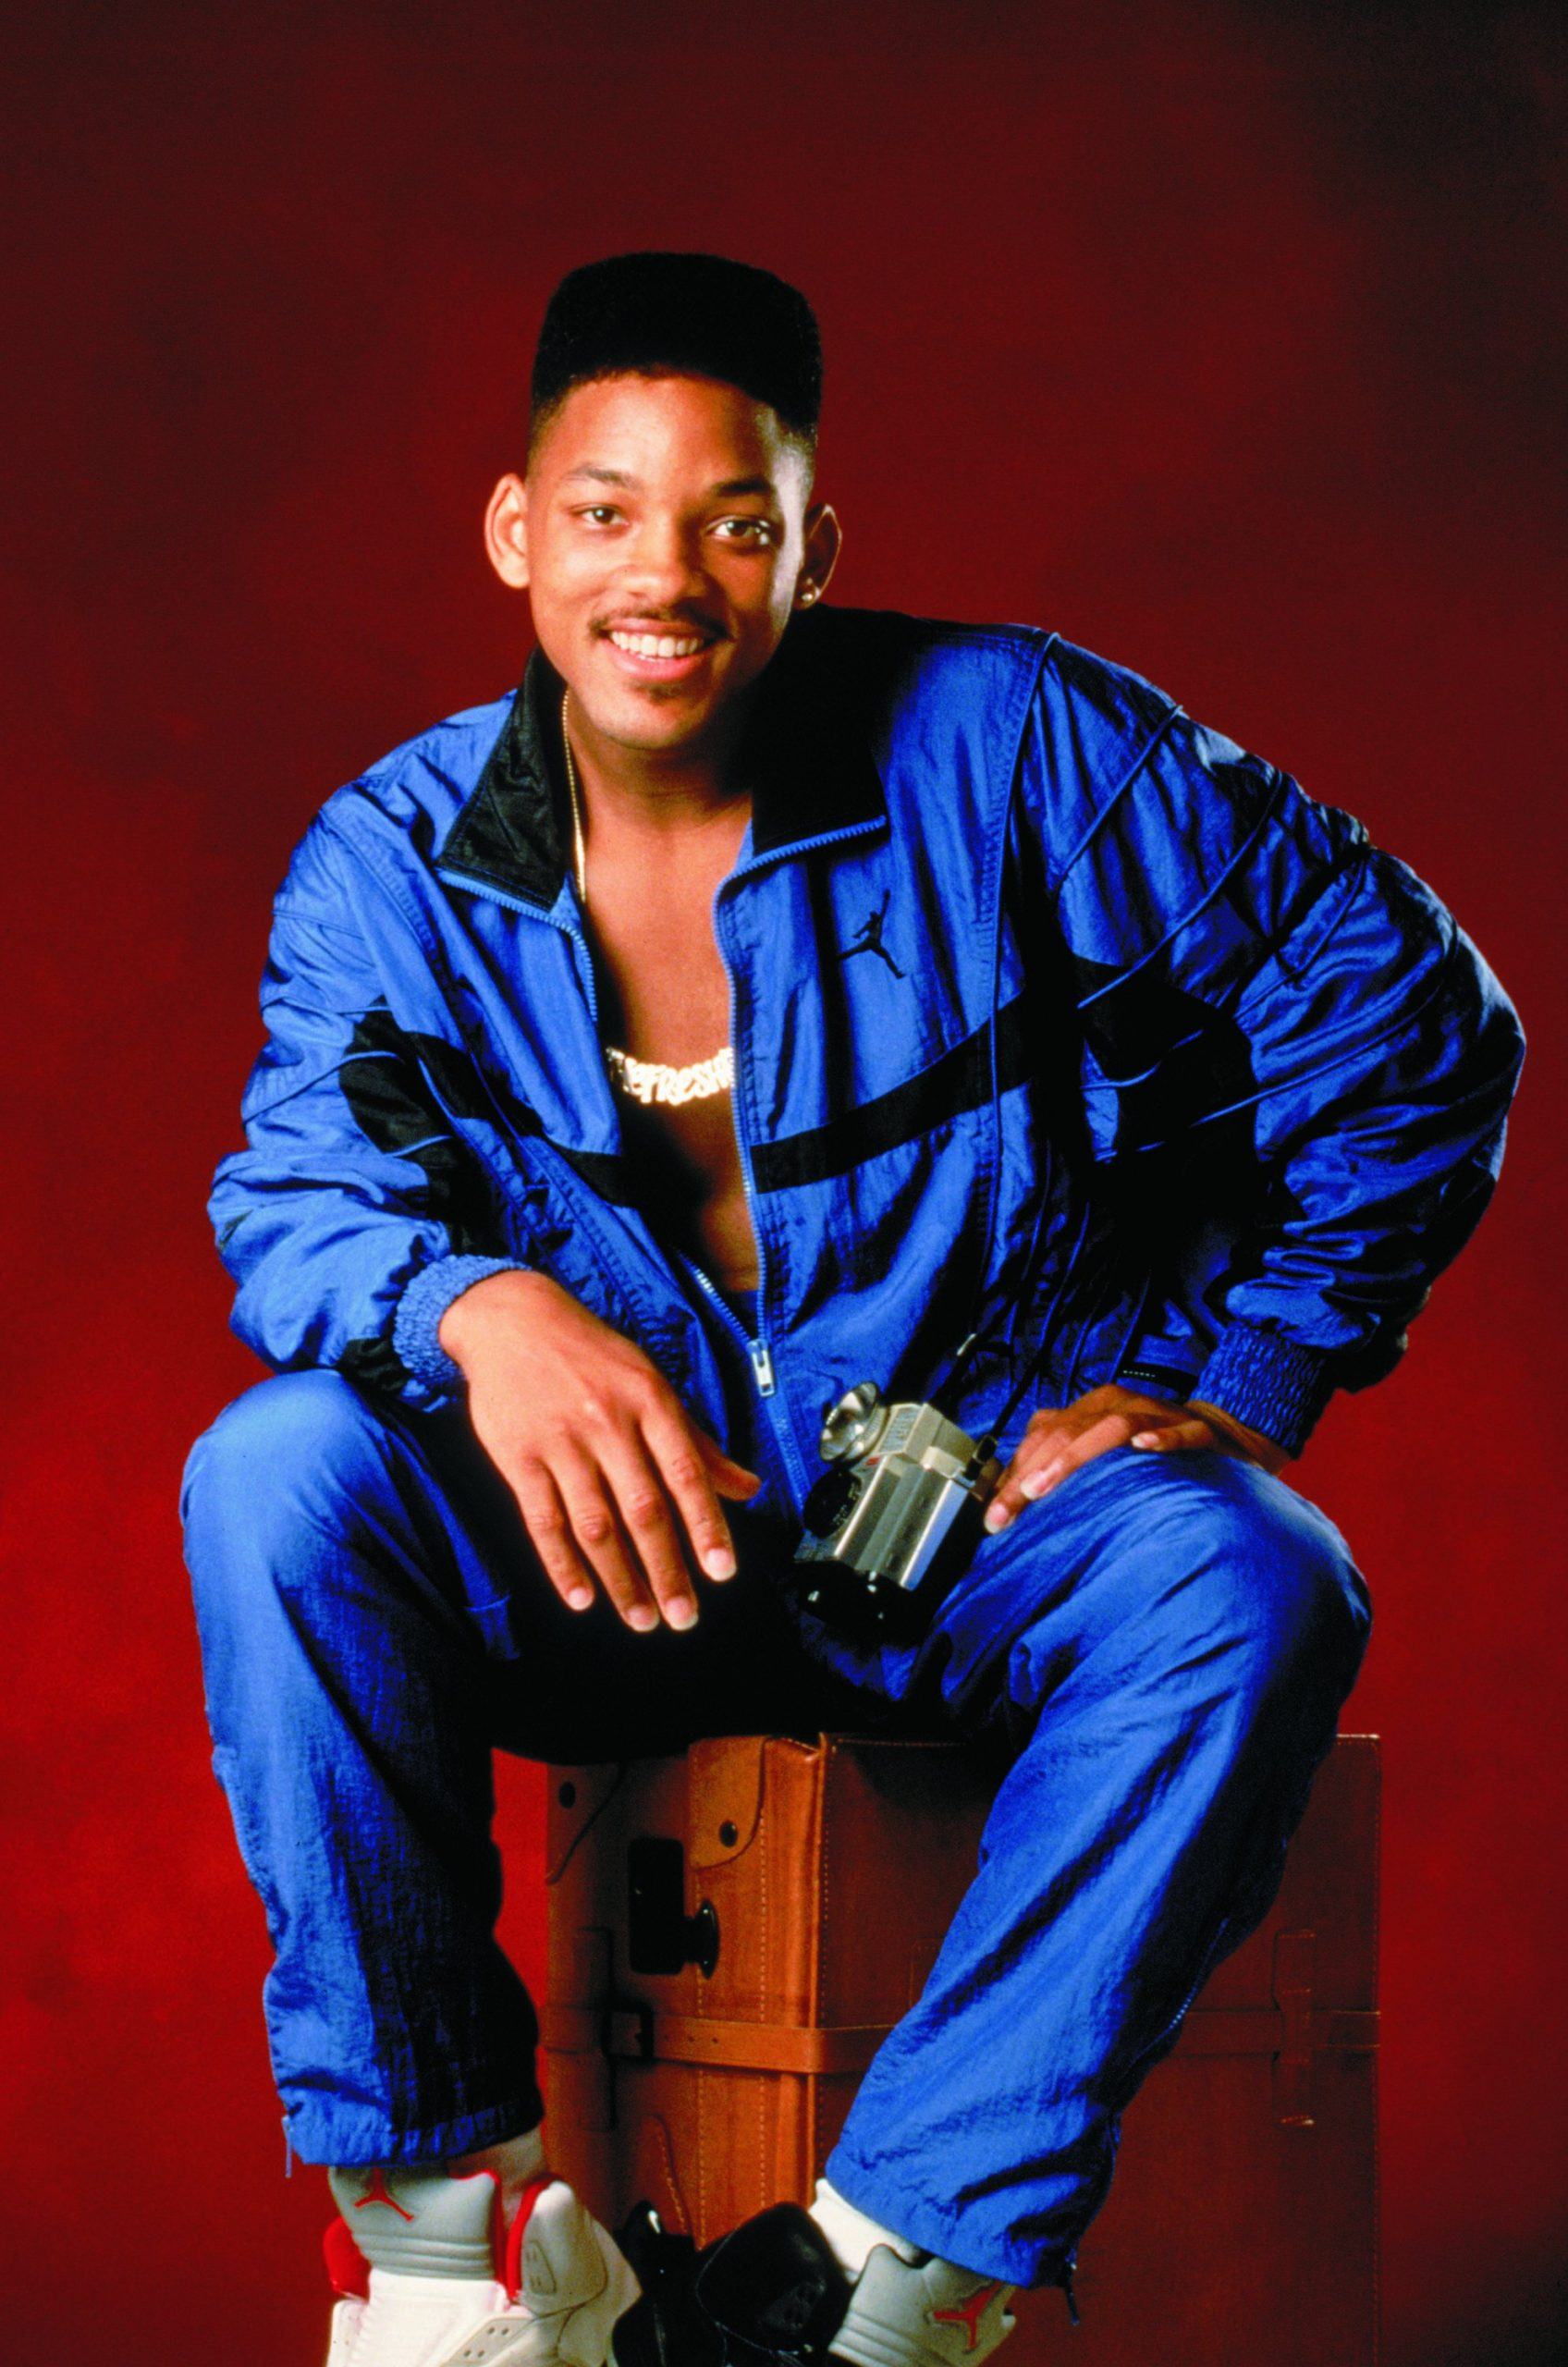 A still photo of Will Smith